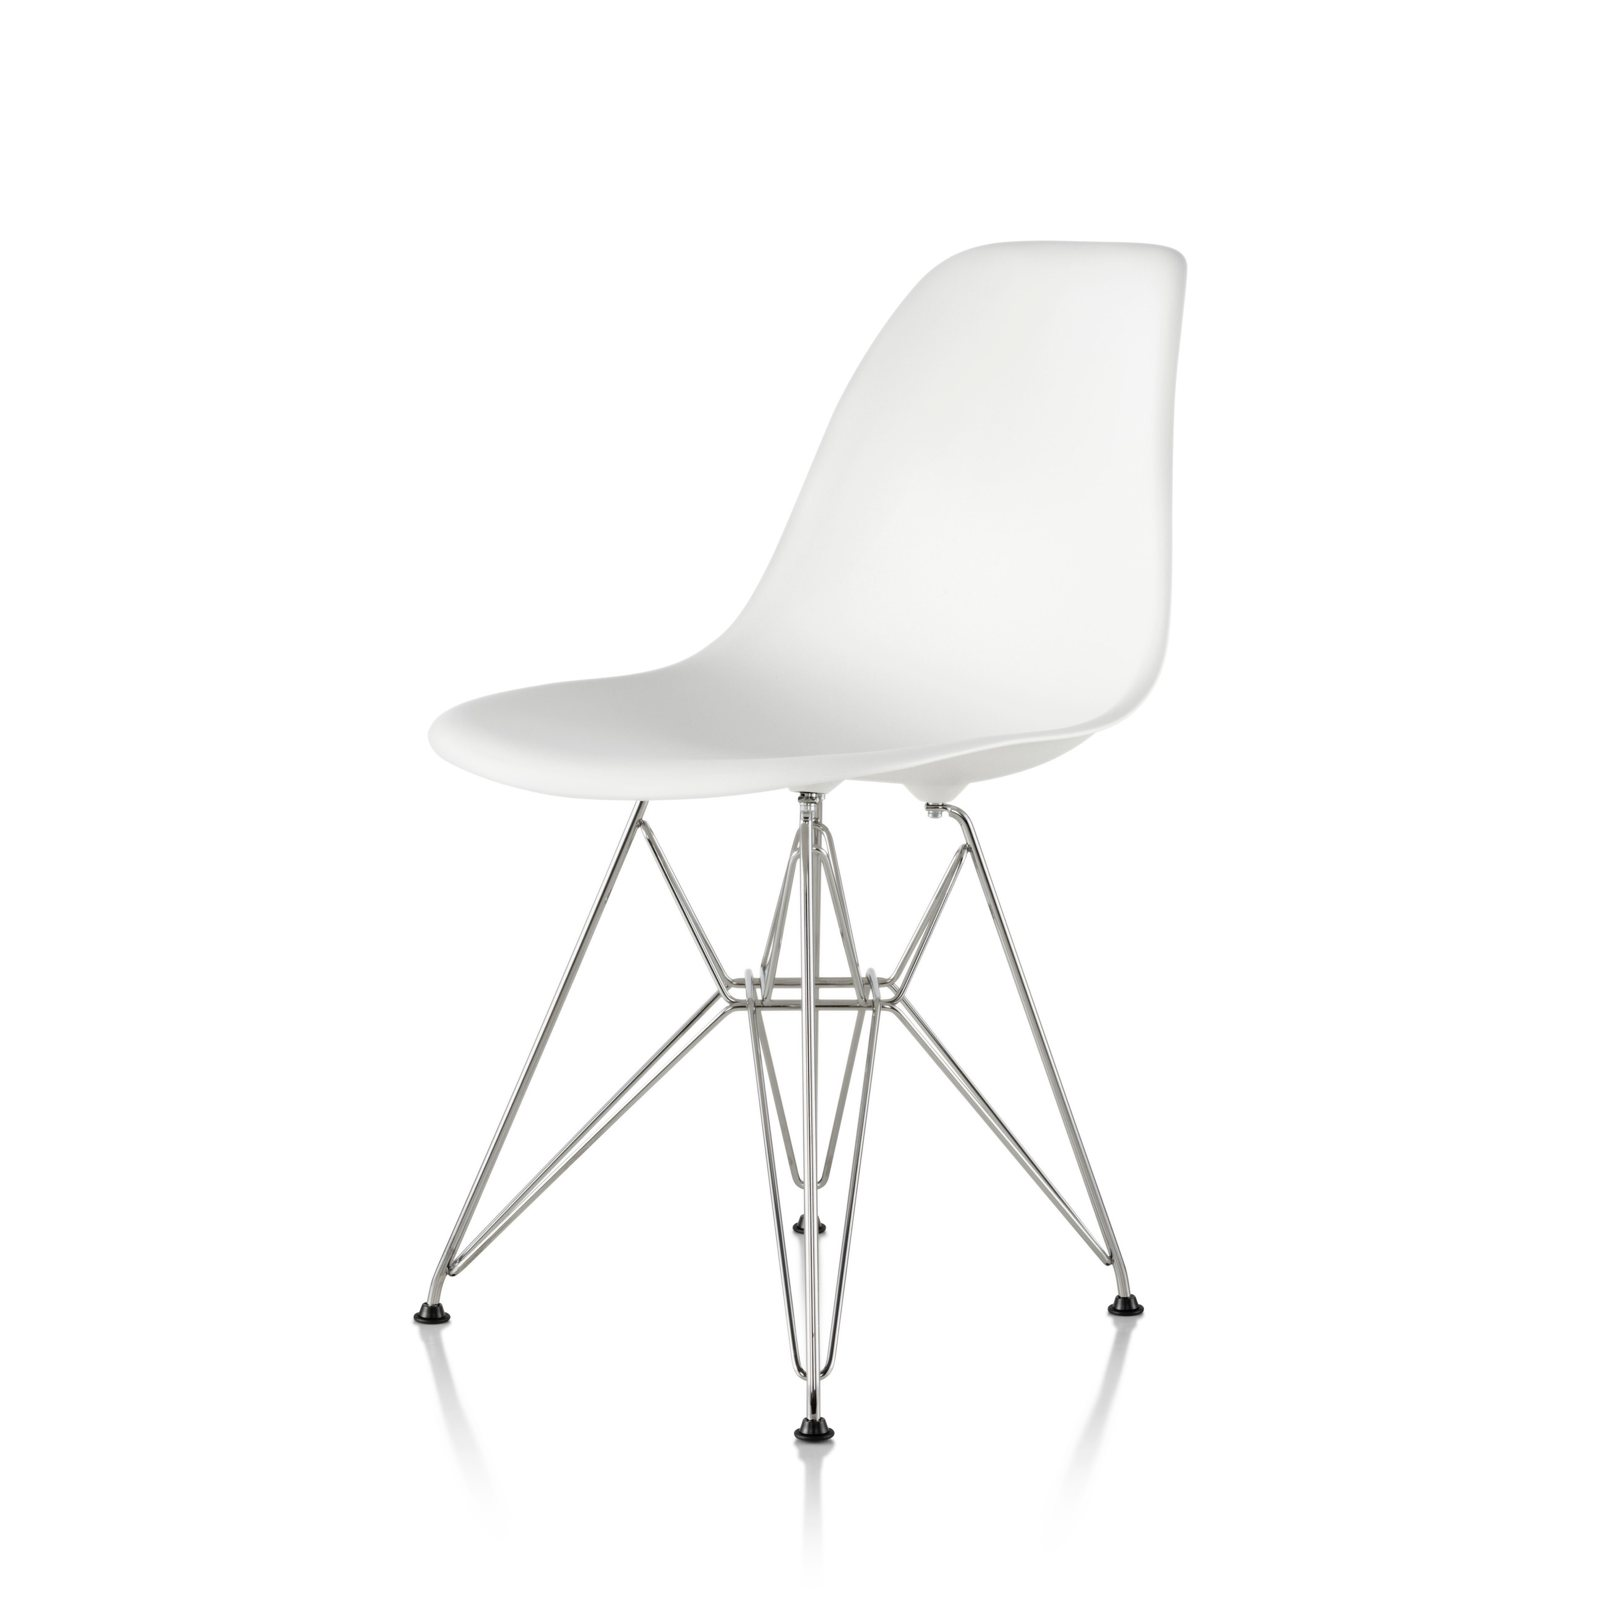 Eames molded plastic side chair wire base by charles ray eames for herm - Herman miller chair eames ...